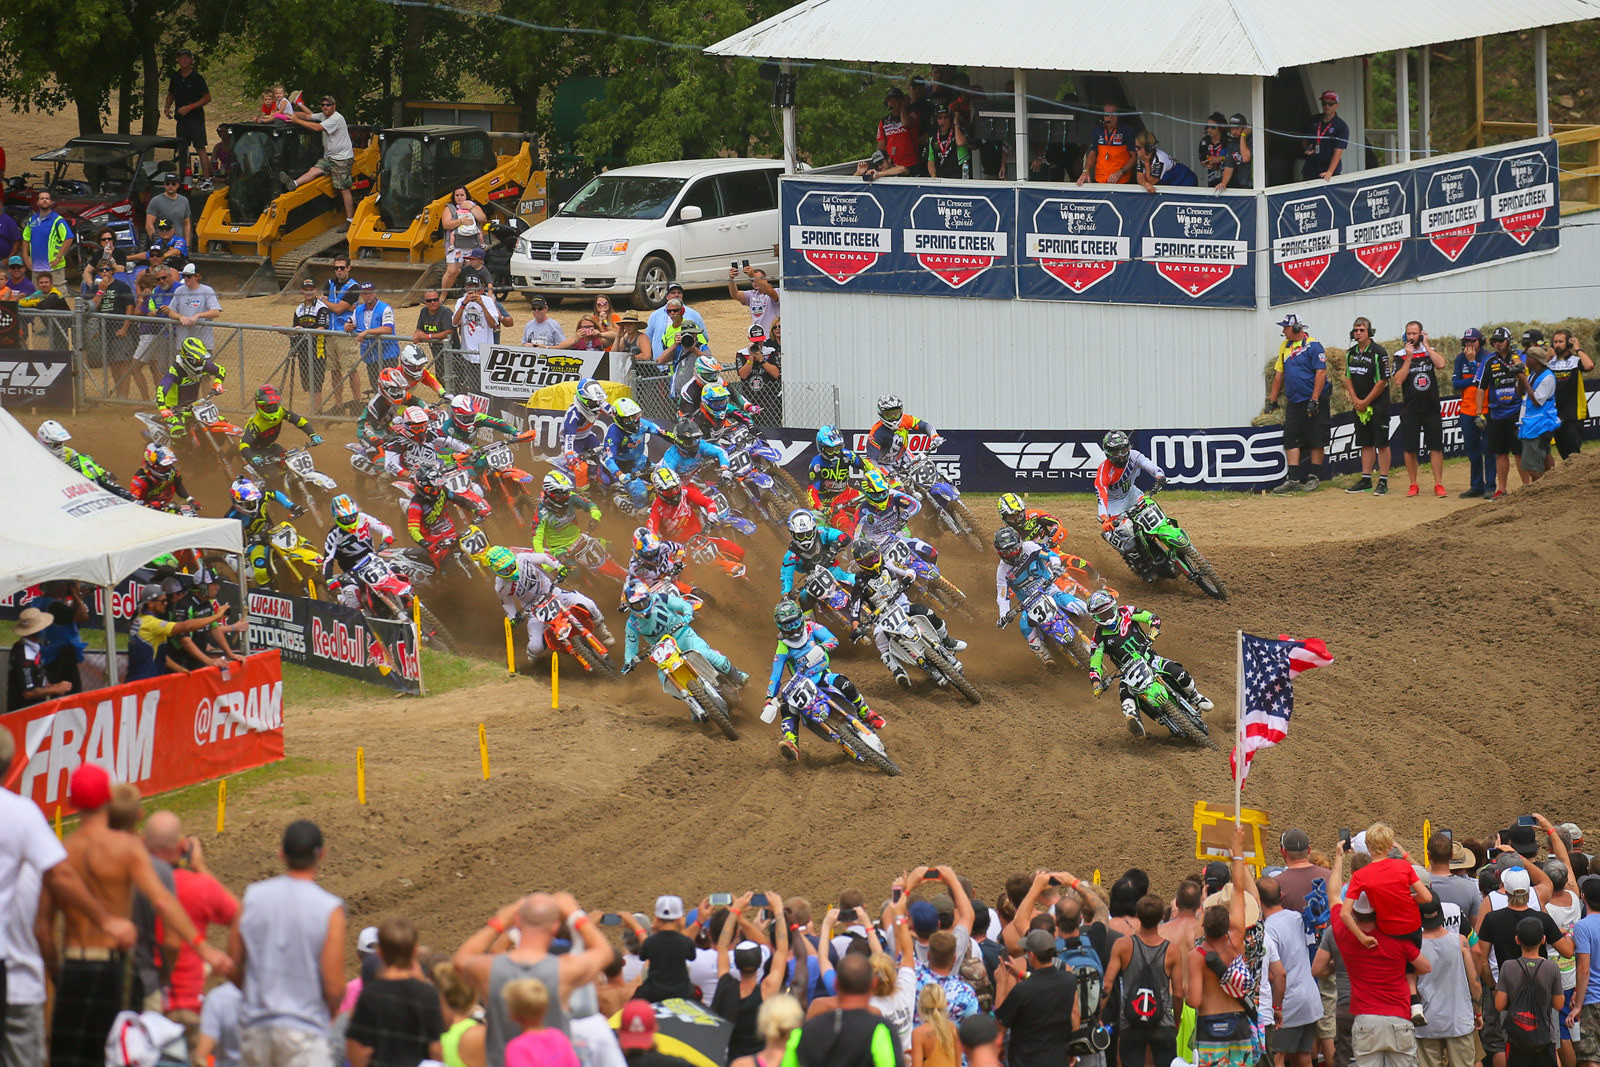 450 moto one start - Photo Blast: Spring Creek - Motocross Pictures - Vital MX